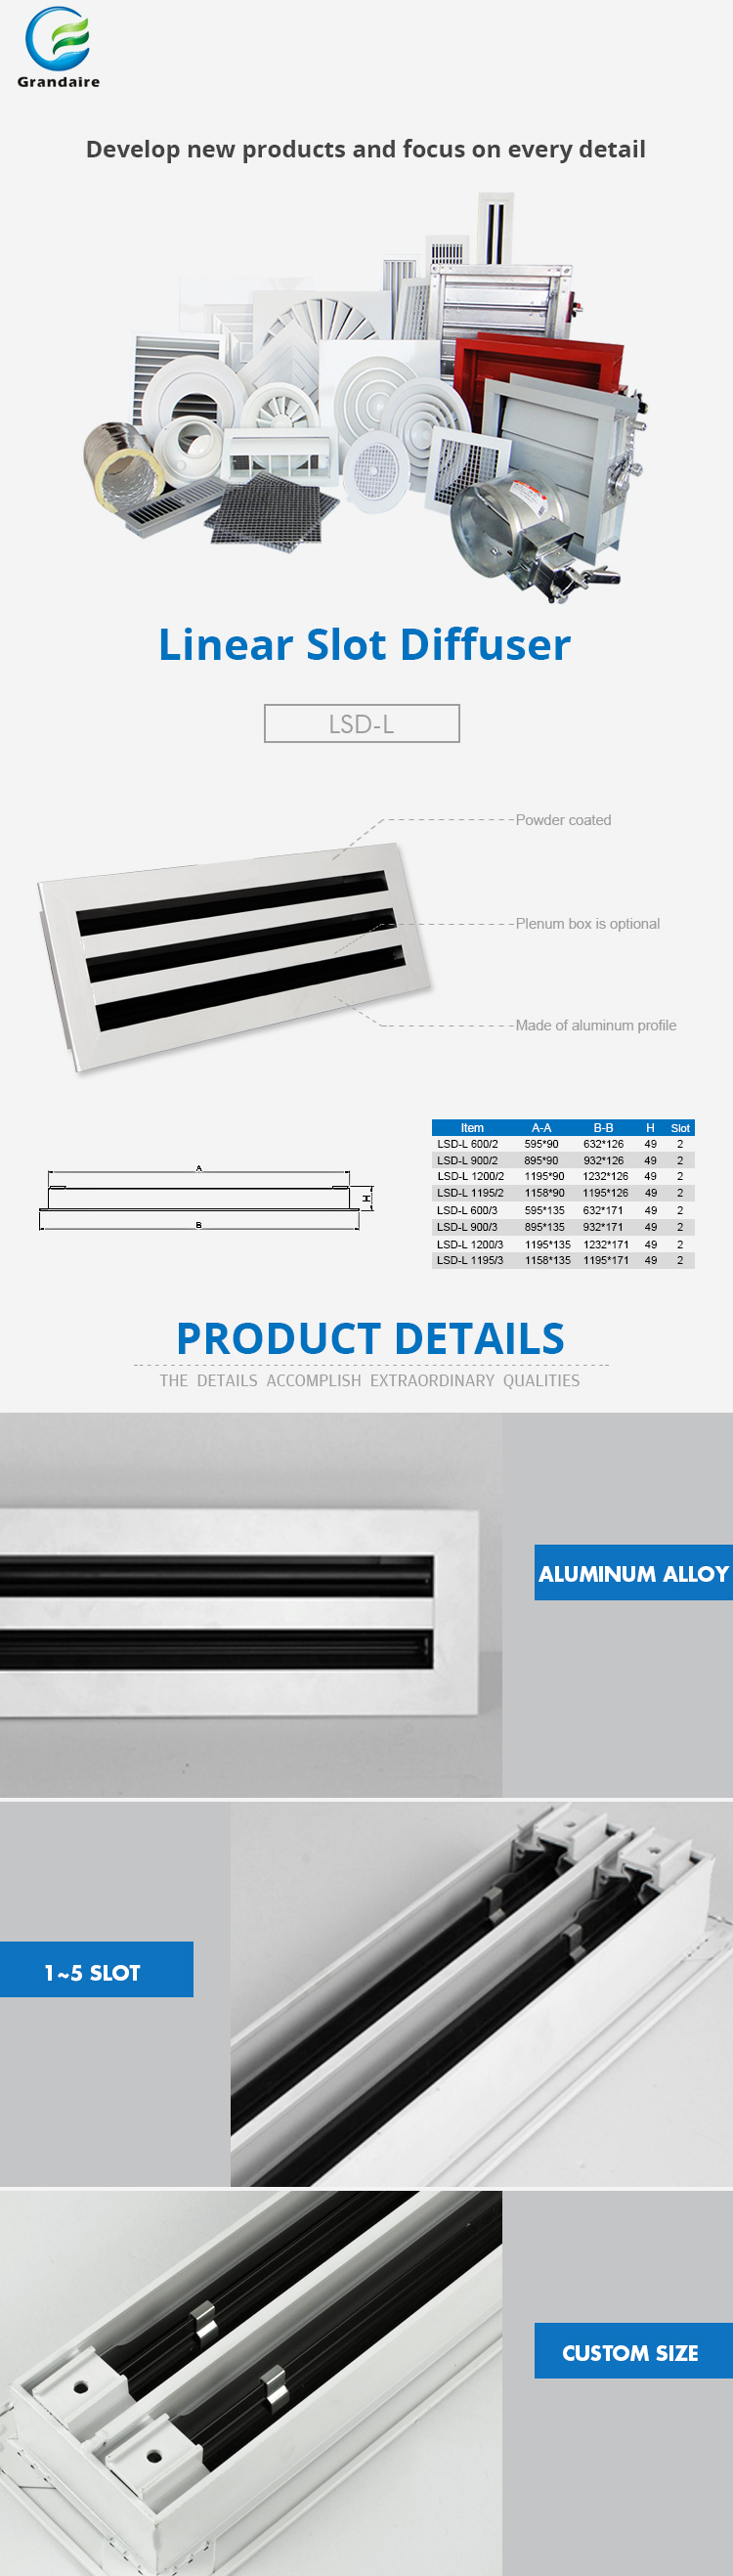 Air Conditioning Linear Slot Air Diffuser with Removable Core For Commercial Building